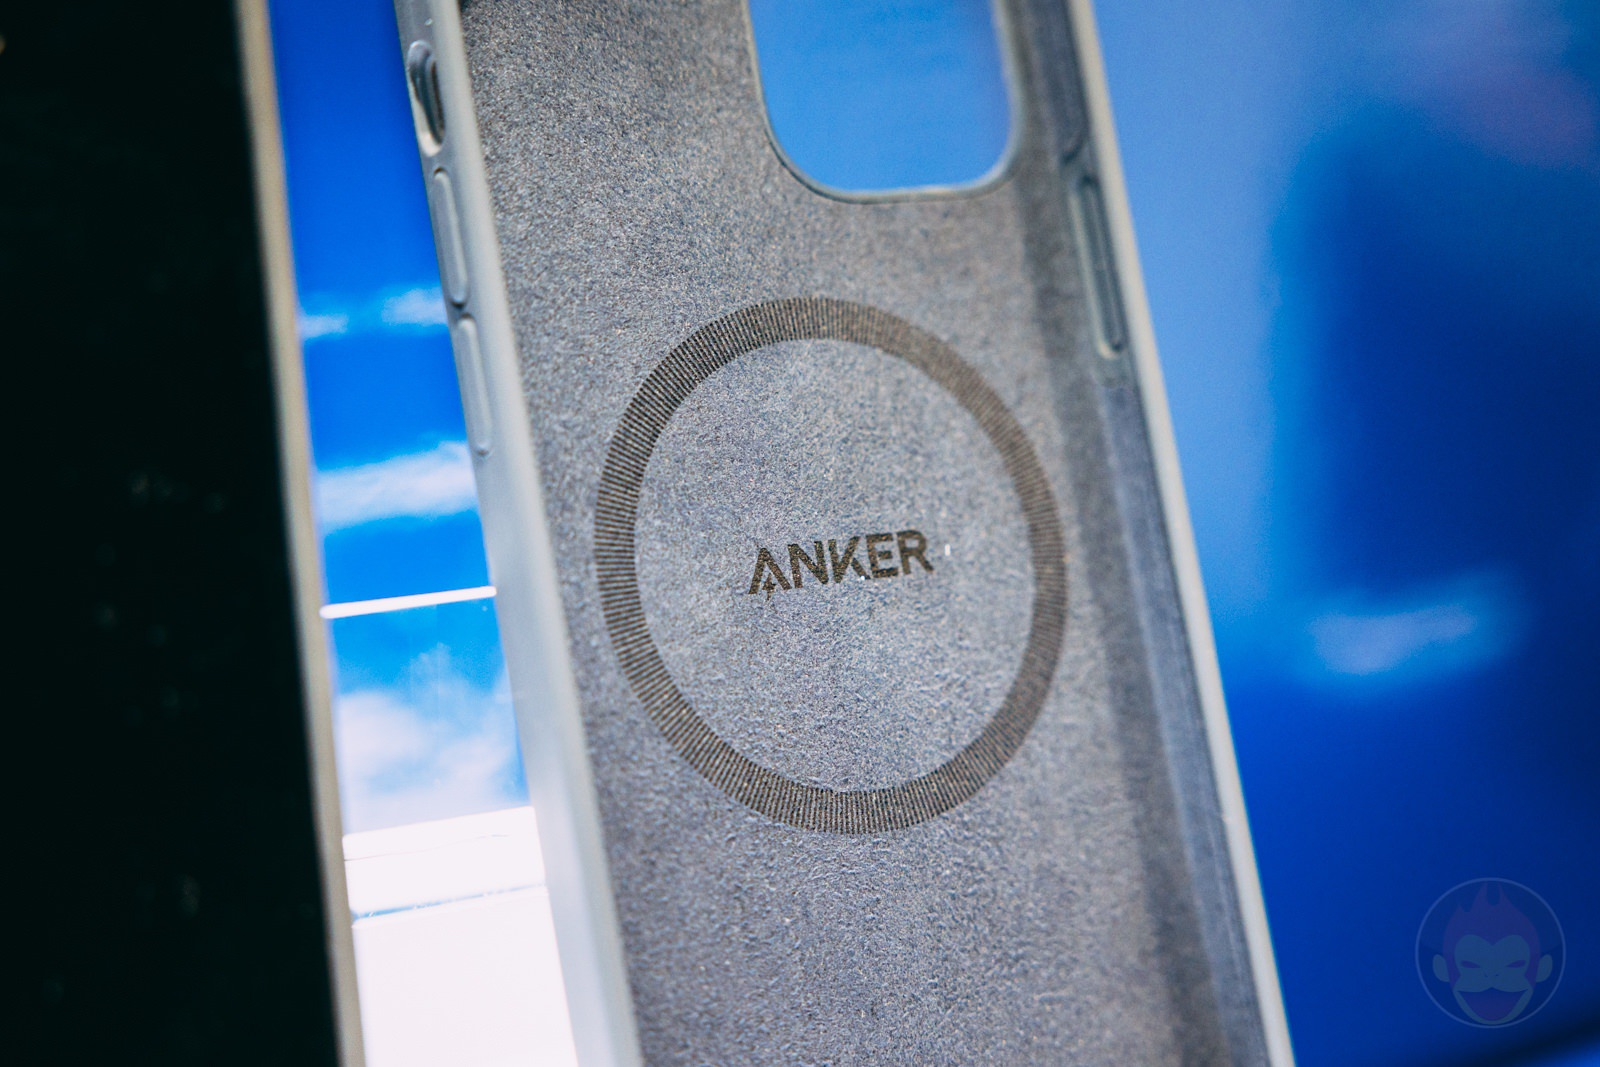 Anker Magnetic Silicone Case for iPhone12 12Pro Handson 12